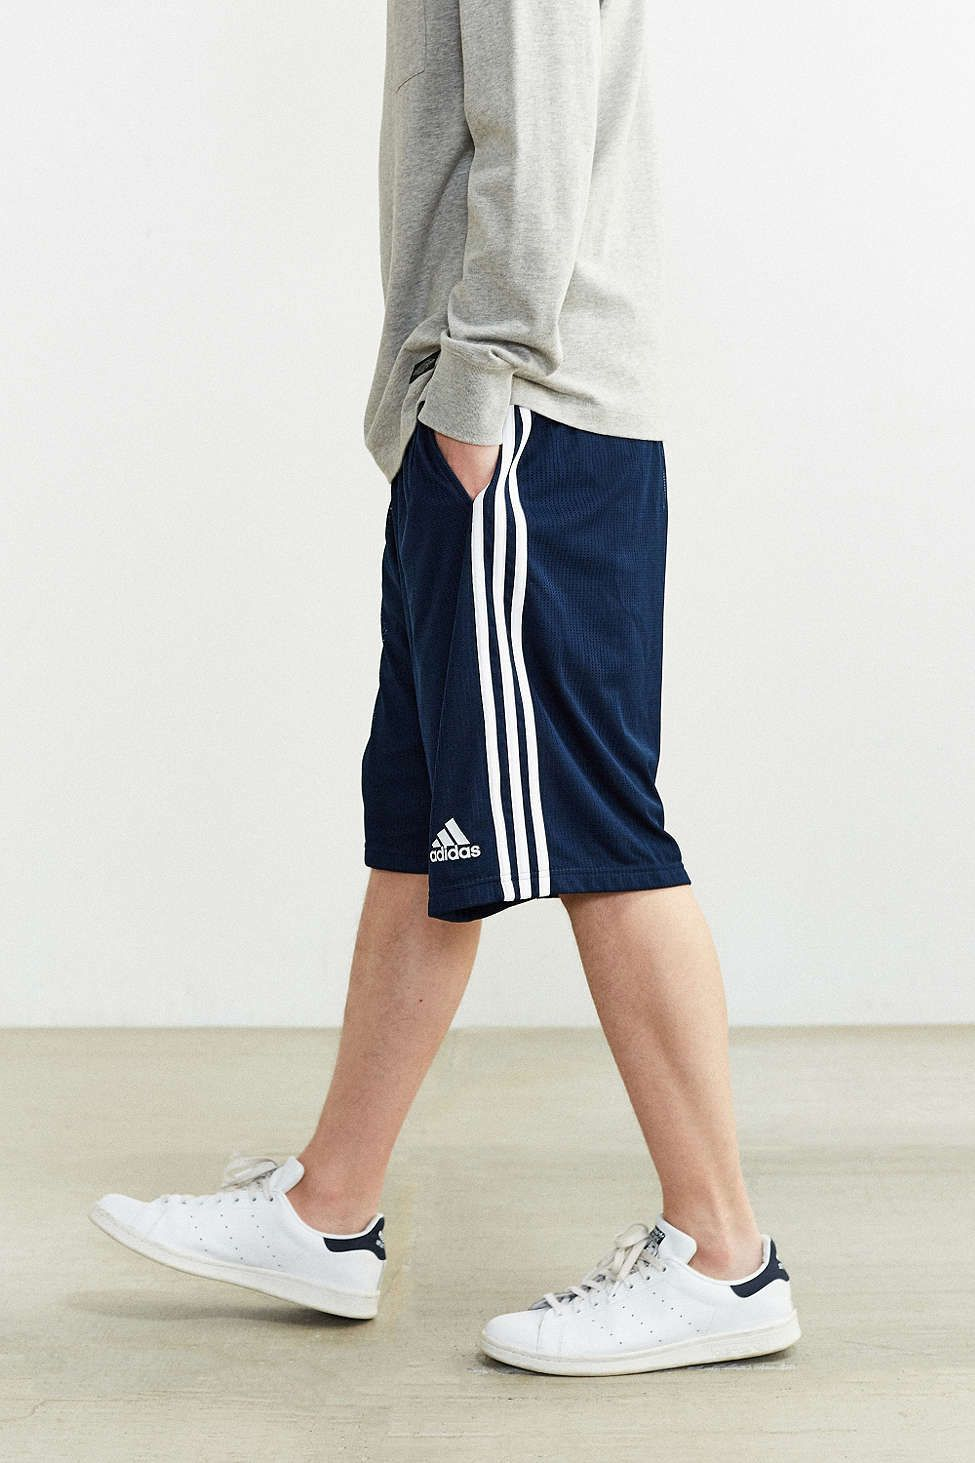 adidas Triple Up Basketball Short   Looks great..just not on